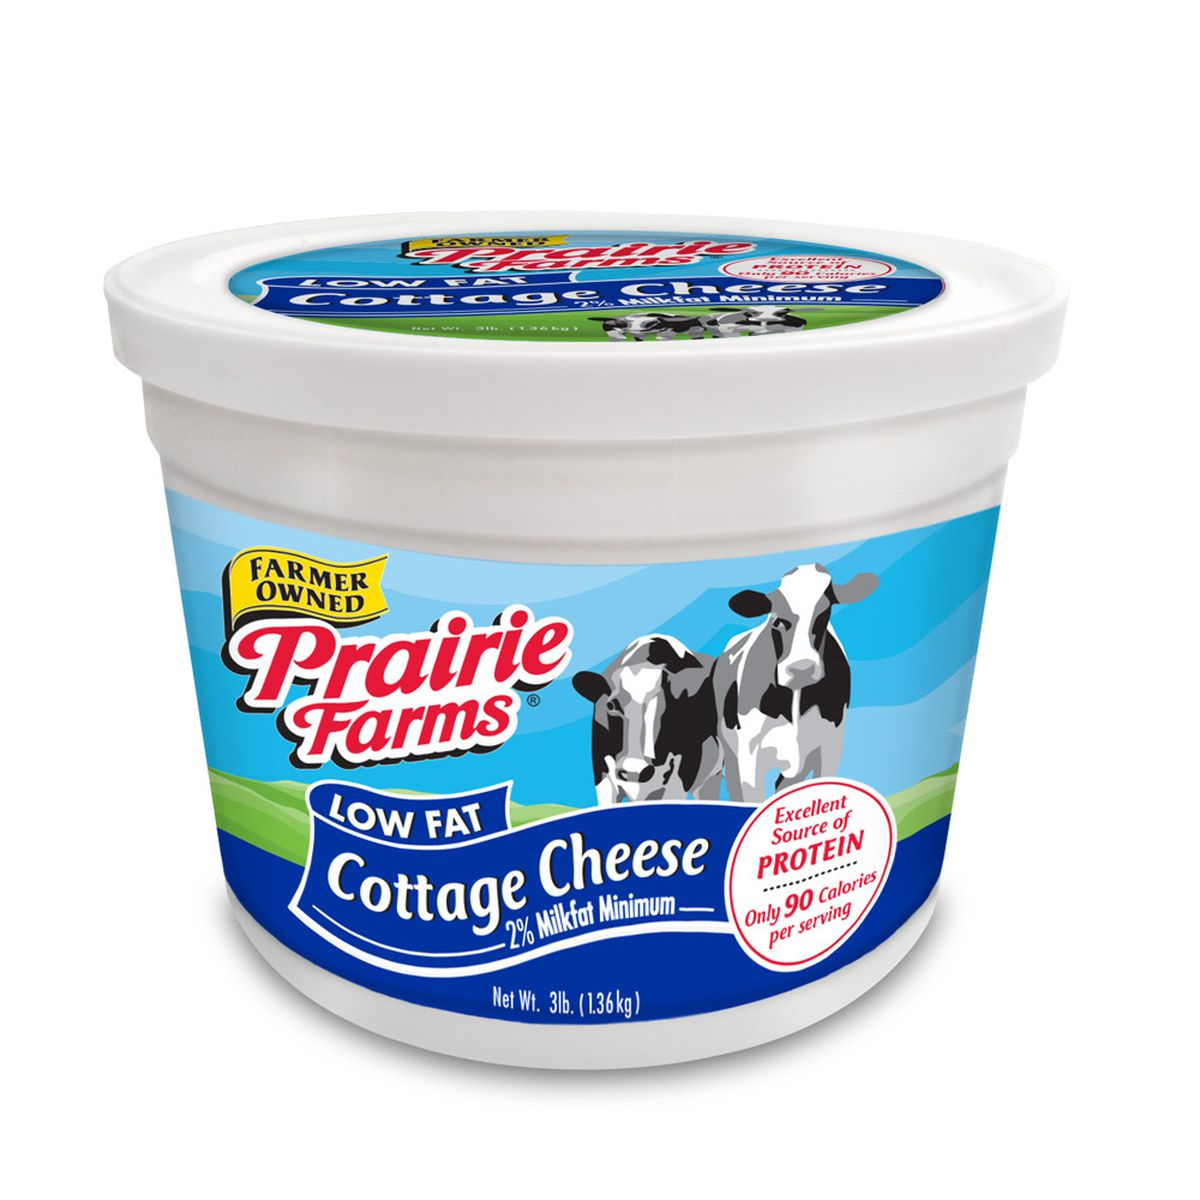 Stupendous Carbondale Made Cottage Cheese Wins Grand Championship At Home Remodeling Inspirations Gresiscottssportslandcom